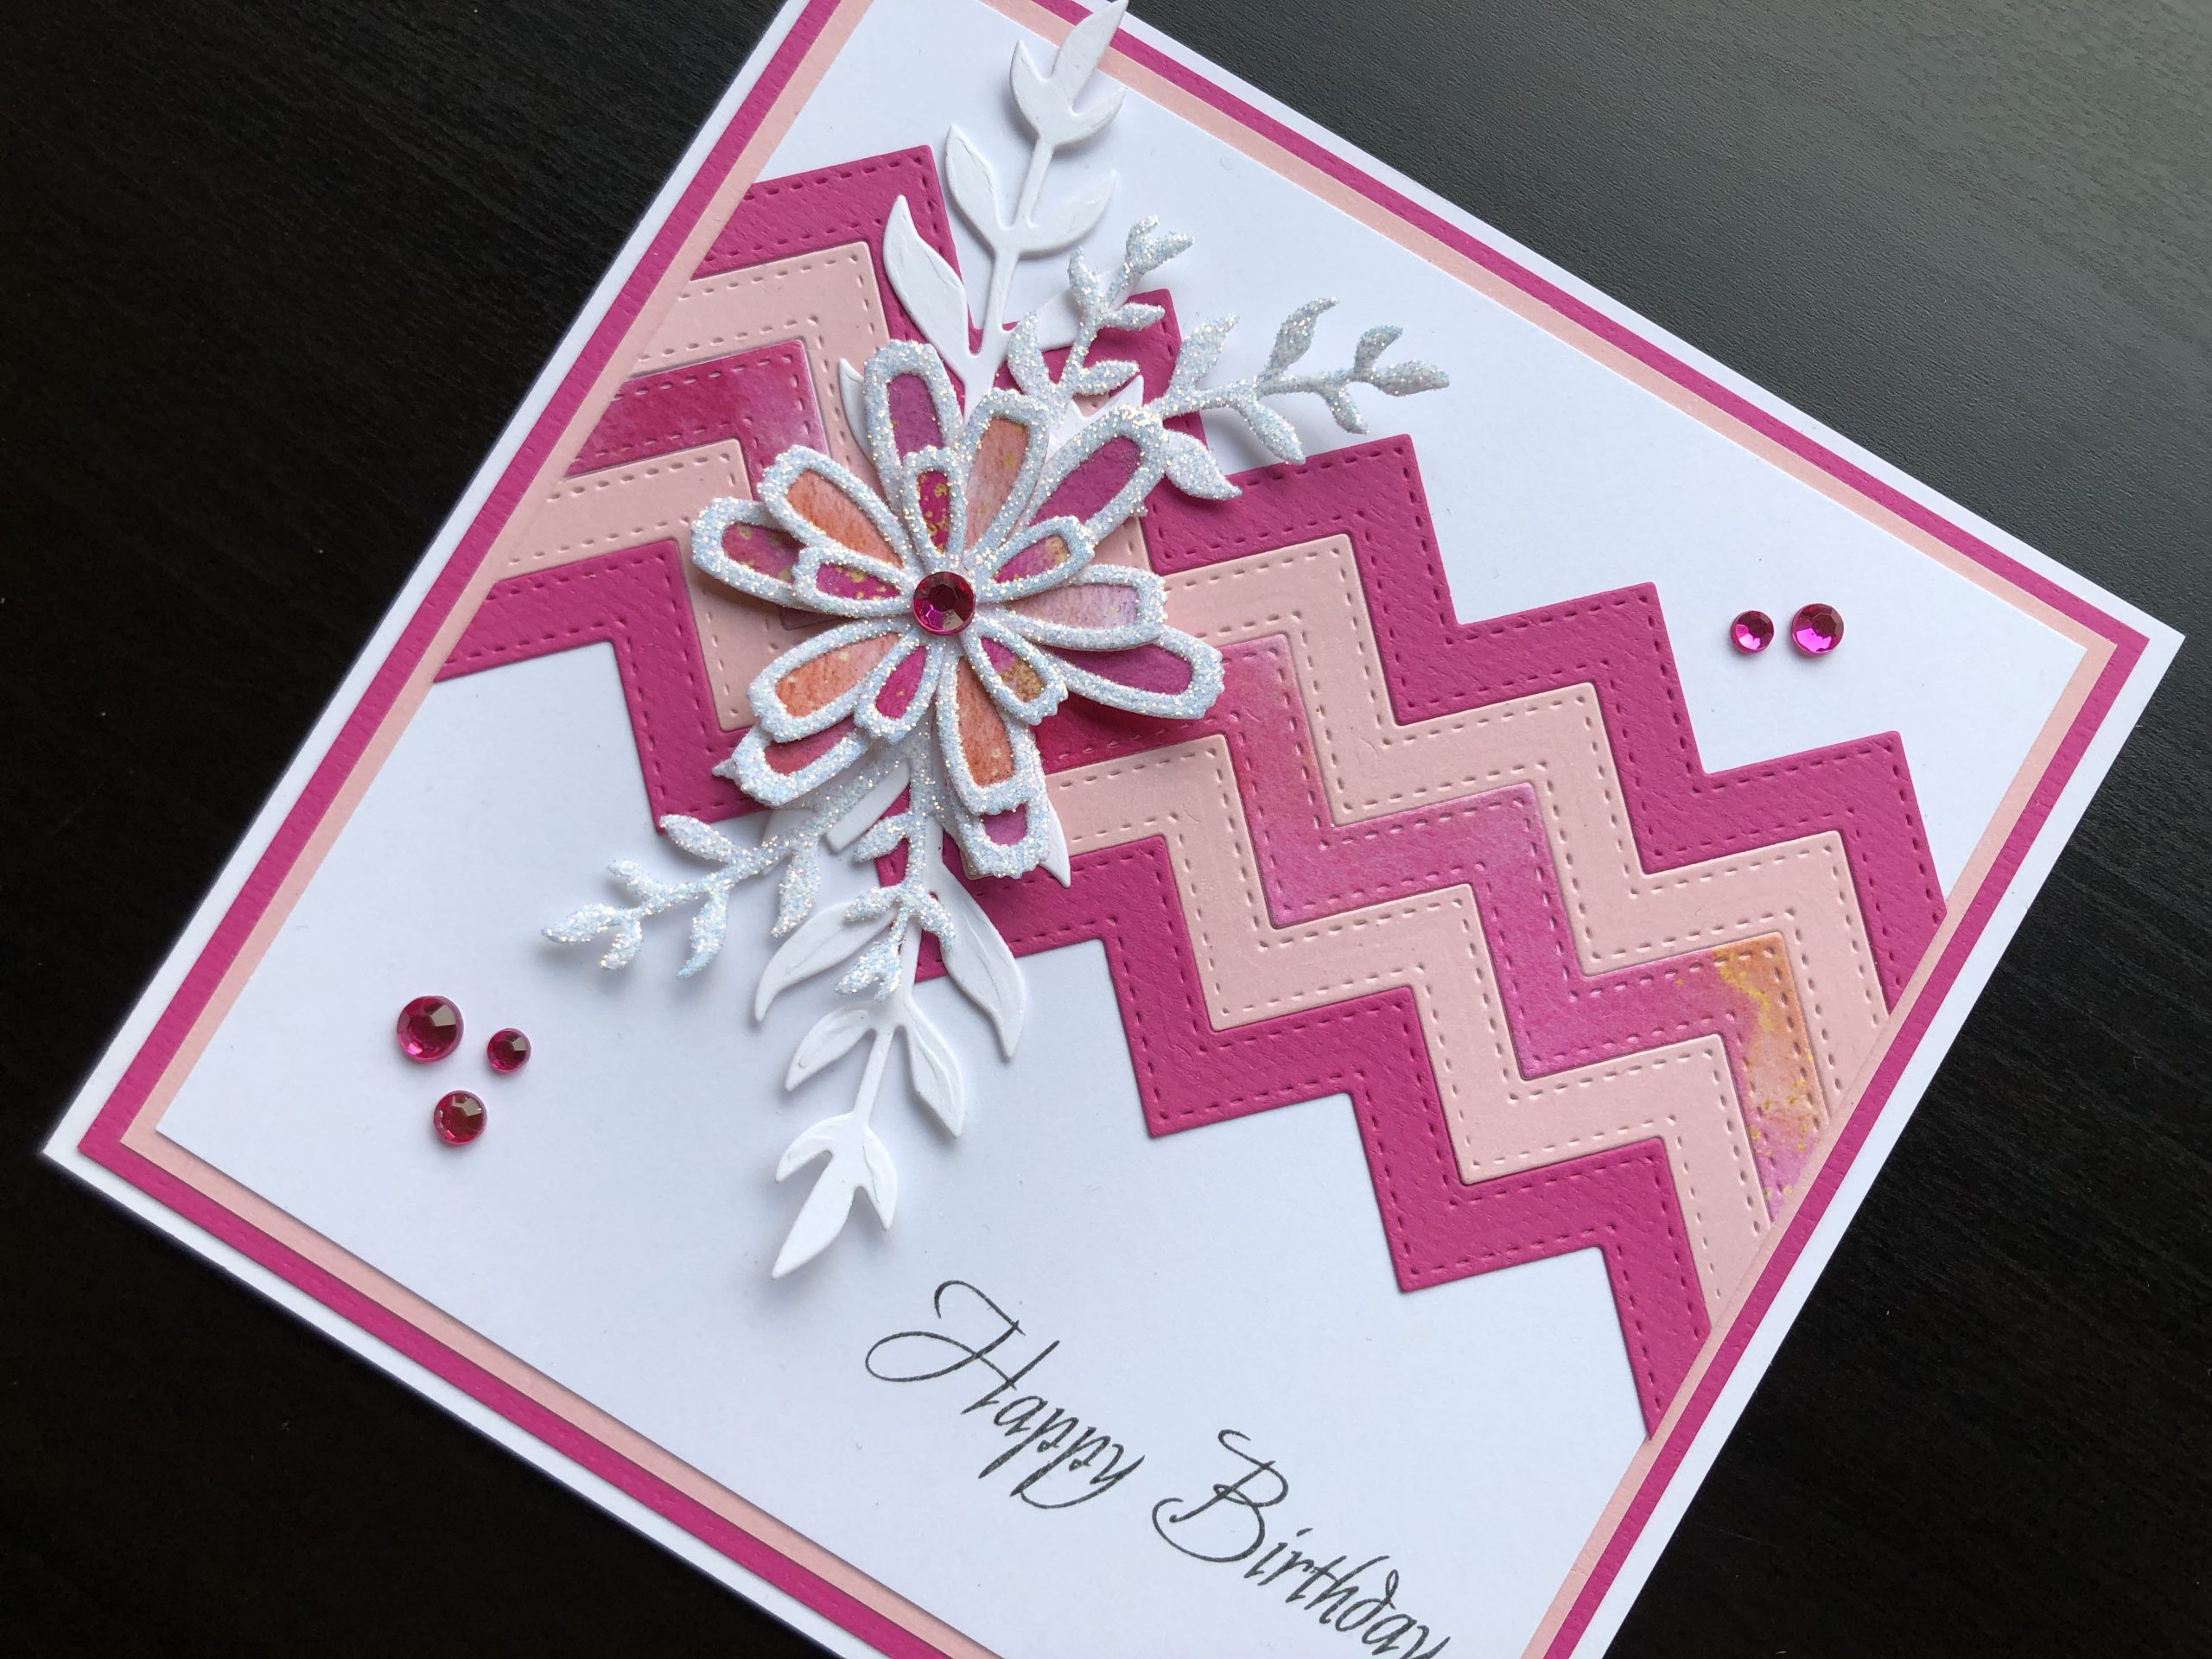 Hand made birthday card with die cut zigzag panel, flowers and leafy stems